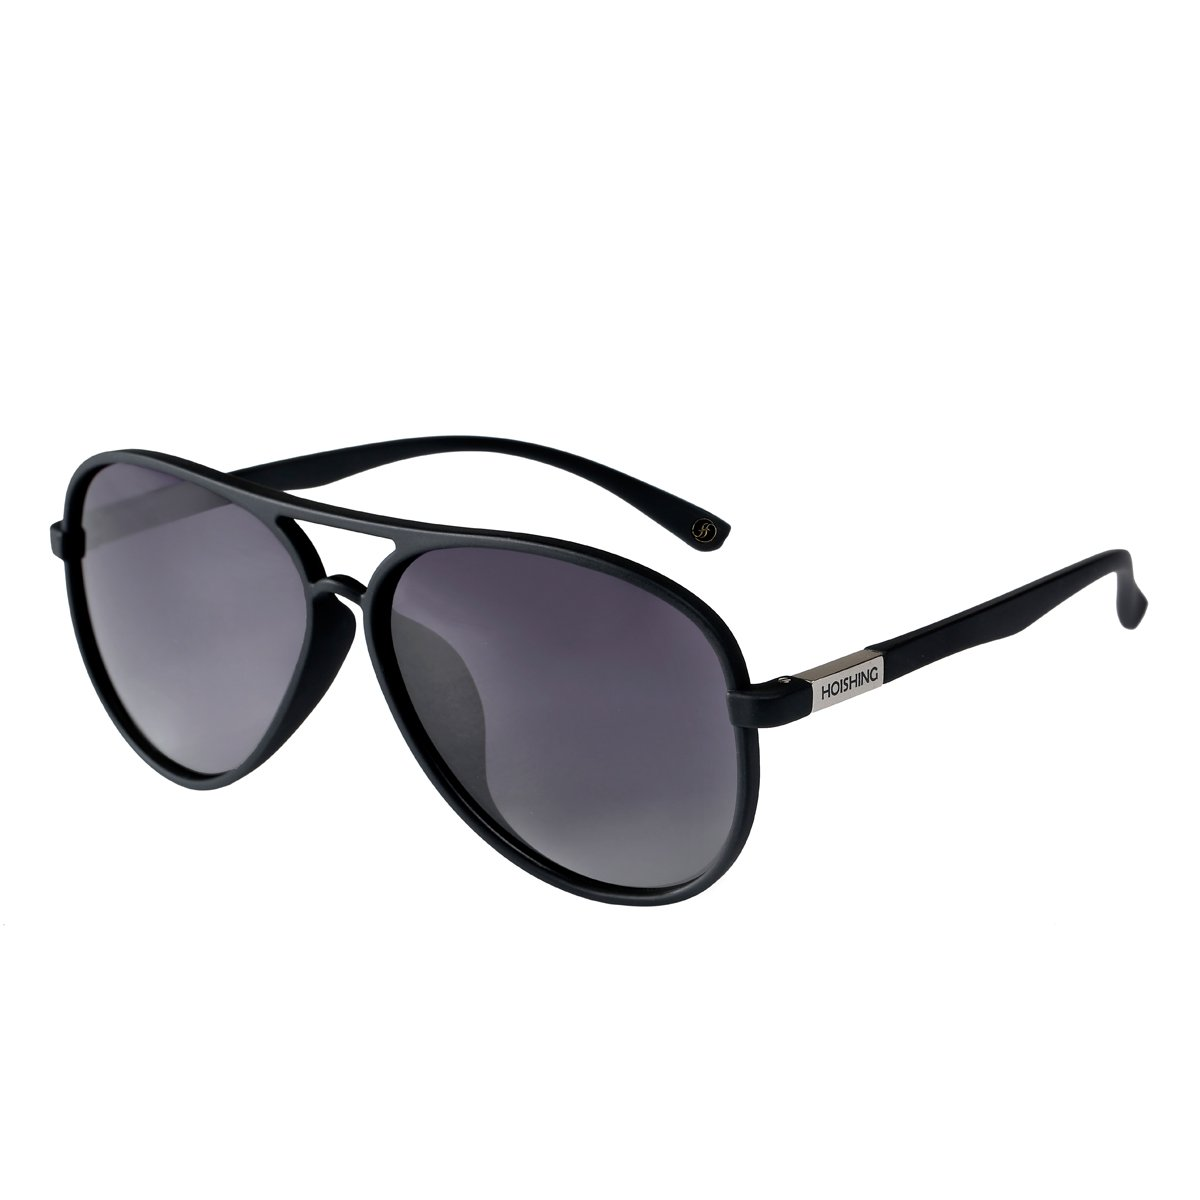 Amazon.com: Hoishing - Gafas de sol polarizadas retro para ...